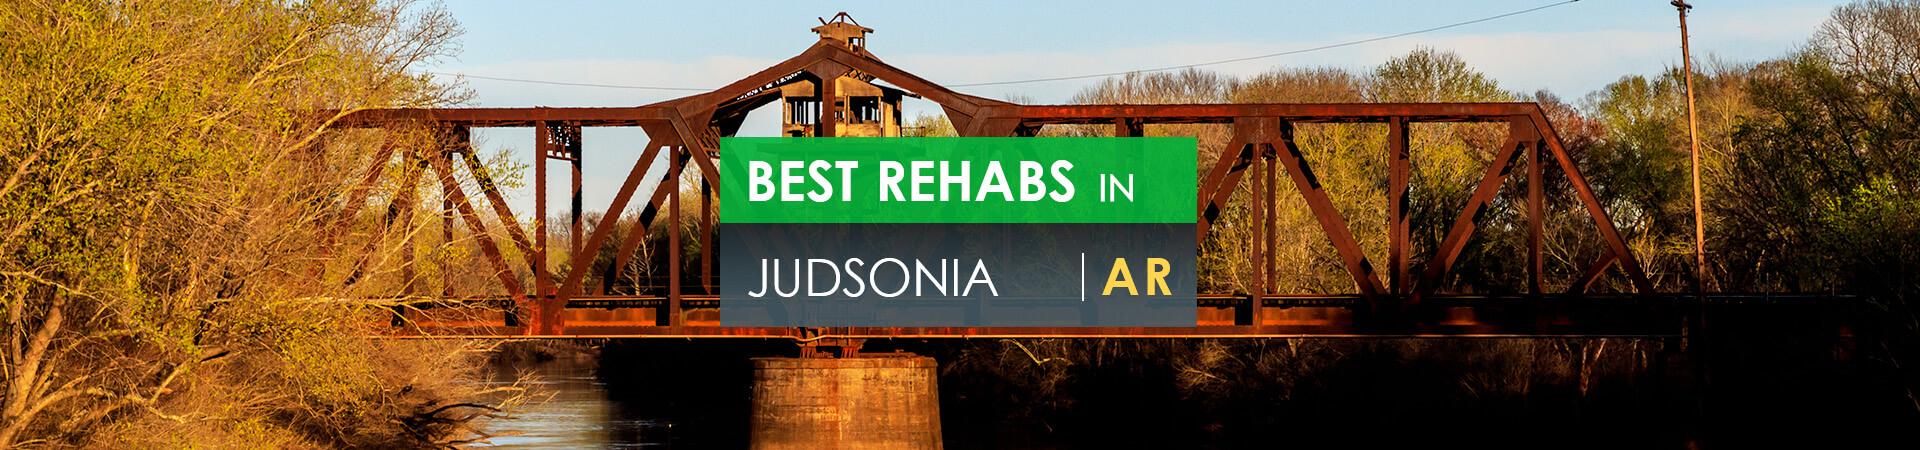 Best rehabs in Judsonia, AR